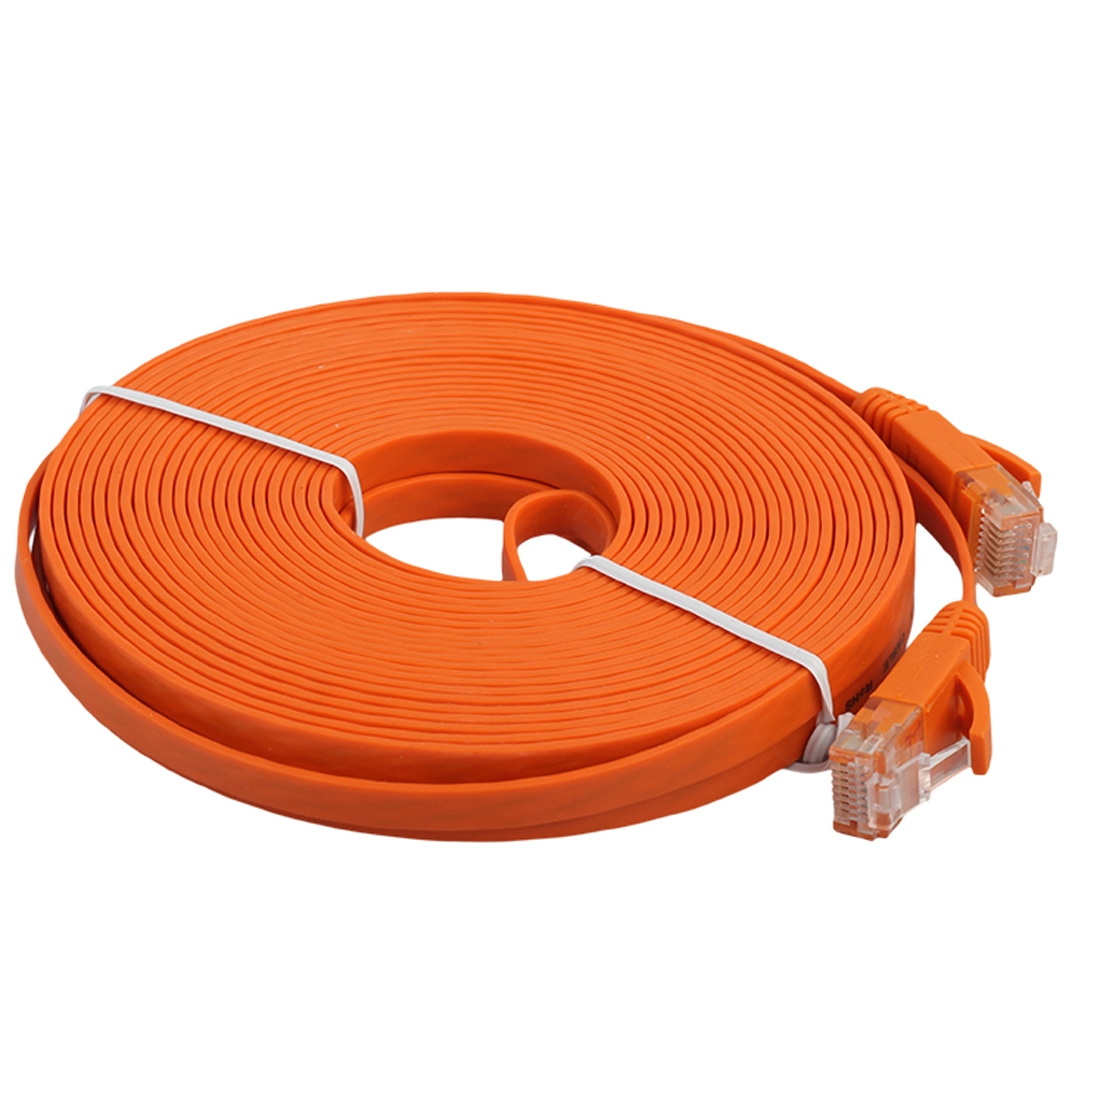 10m cat6 ultra thin flat ethernet network lan cable patch lead rj45 orange. Black Bedroom Furniture Sets. Home Design Ideas